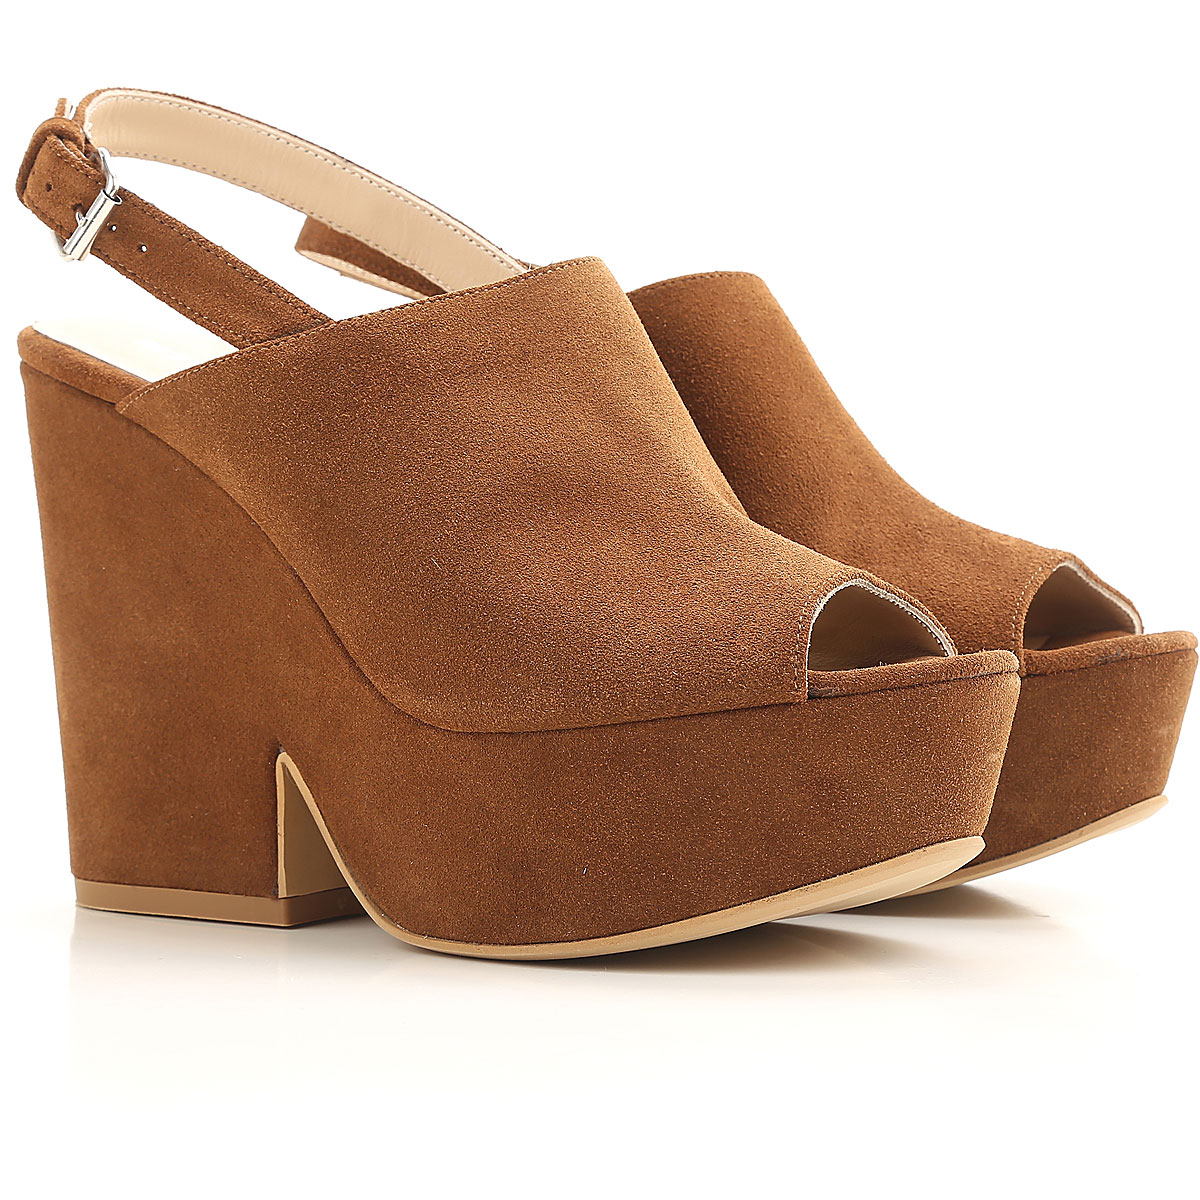 Strategia Wedges for Women On Sale in Outlet, Tobacco, Suede leather, 2019, 5.5 6.5